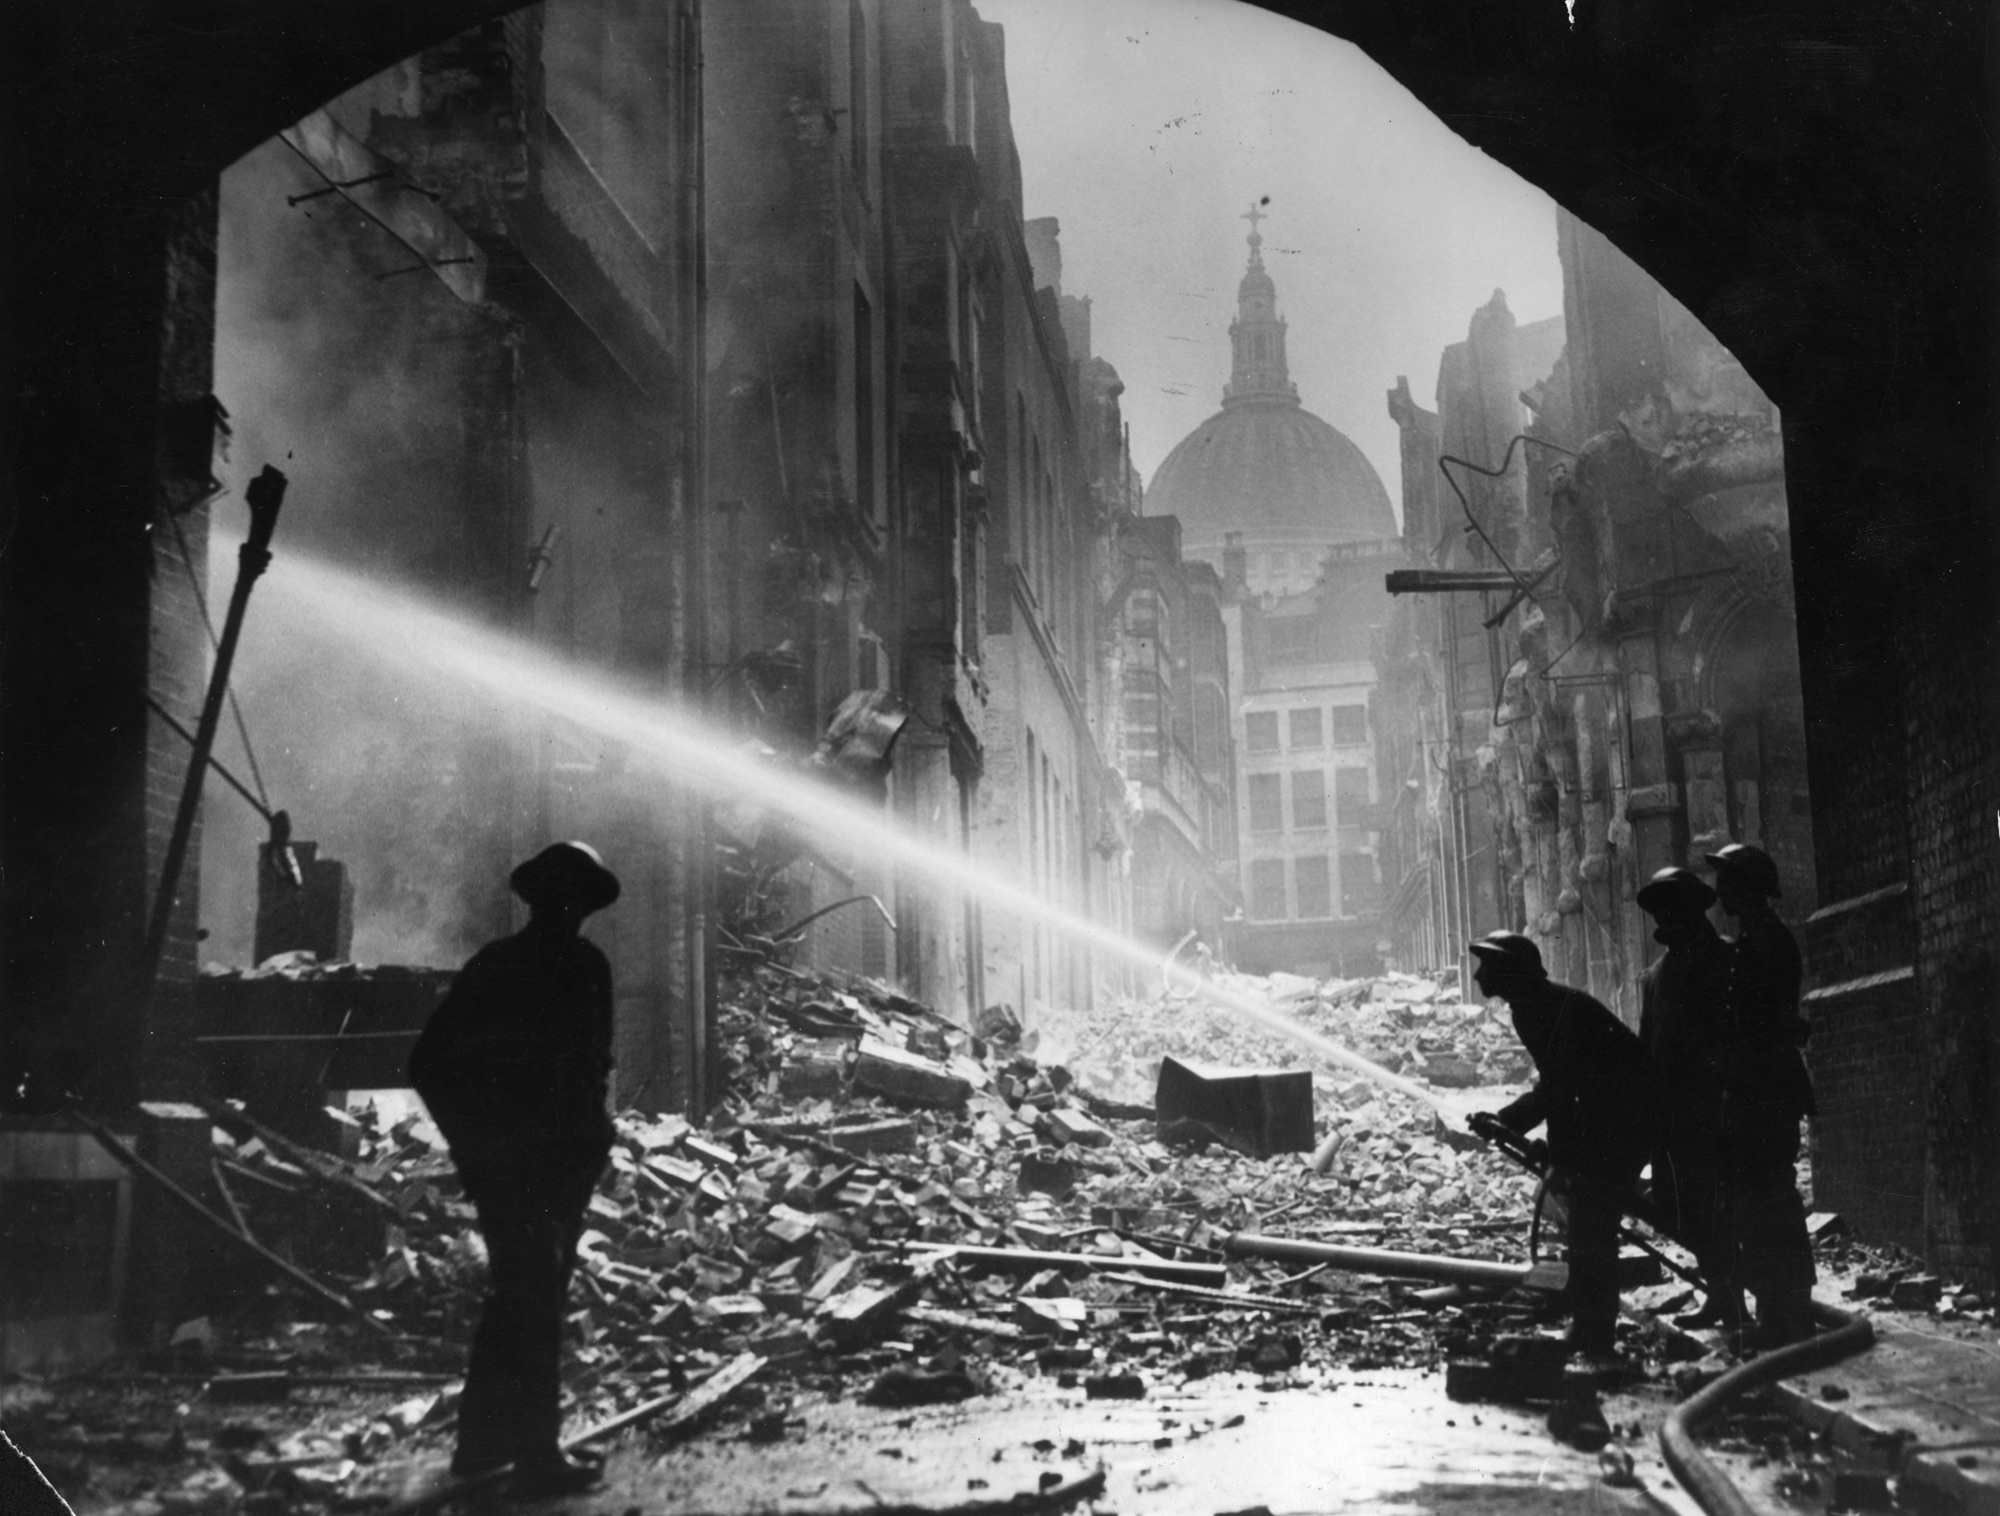 Photograph of a Blitz fire in the area surrounding St Paul's Cathedral, 1941